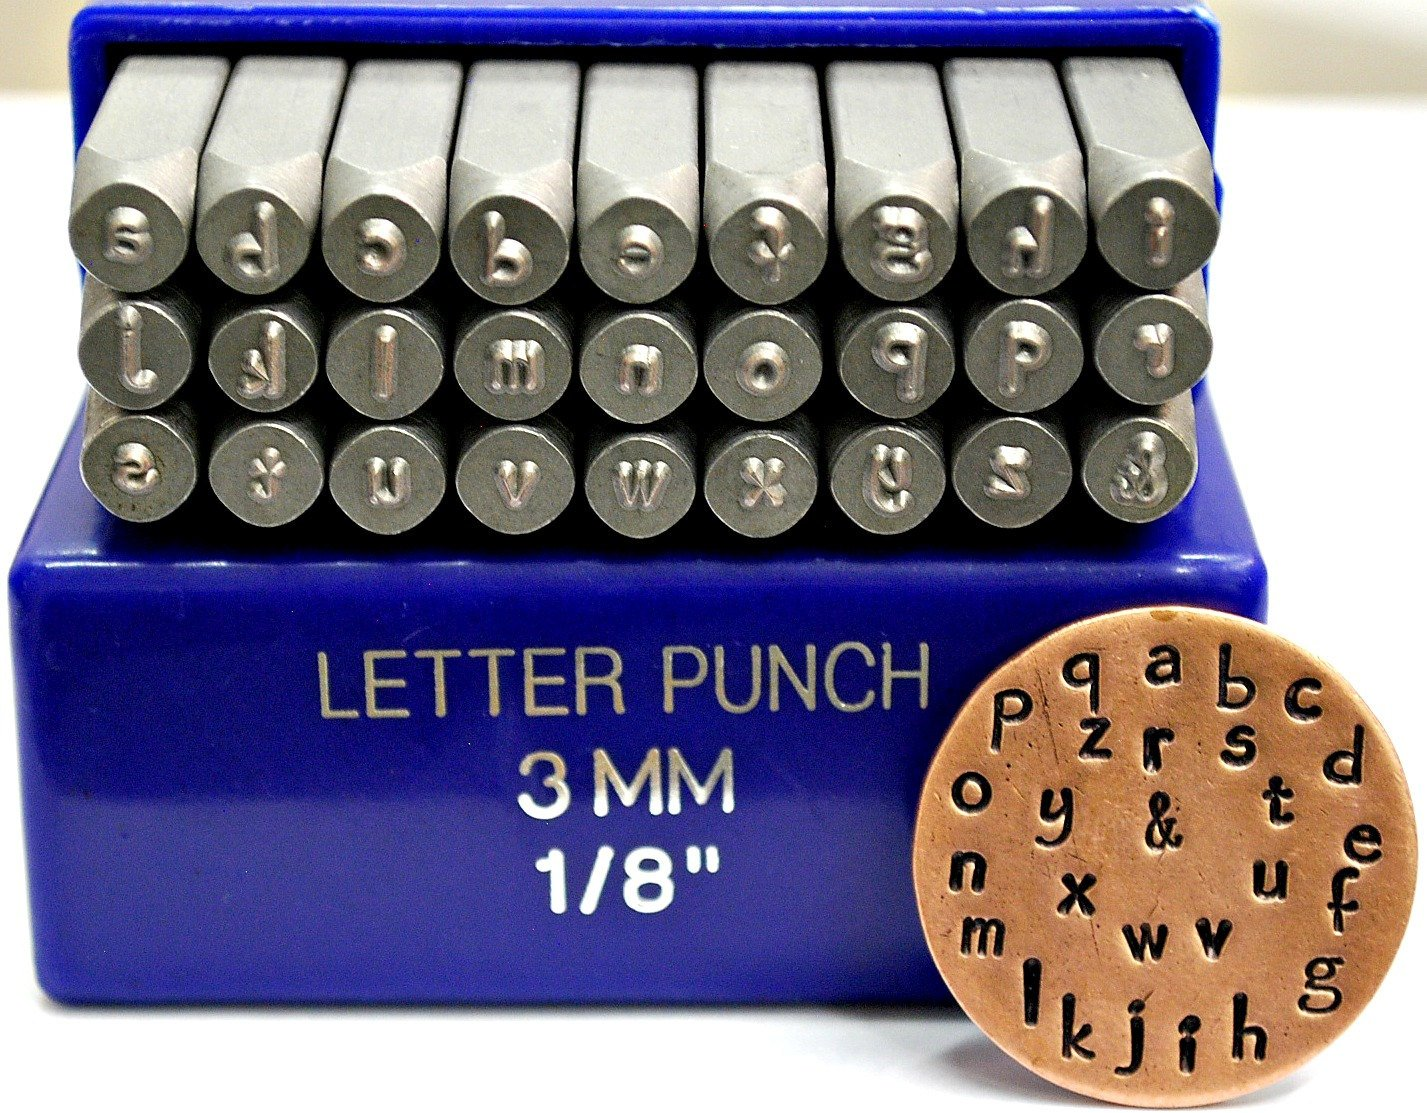 3mm Papyrus Font Alphabet Punch Letter Set, 27 Pieces Including &, Available in Uppercase, Lowercase or a Combination Set (Lowercase SGE15L)